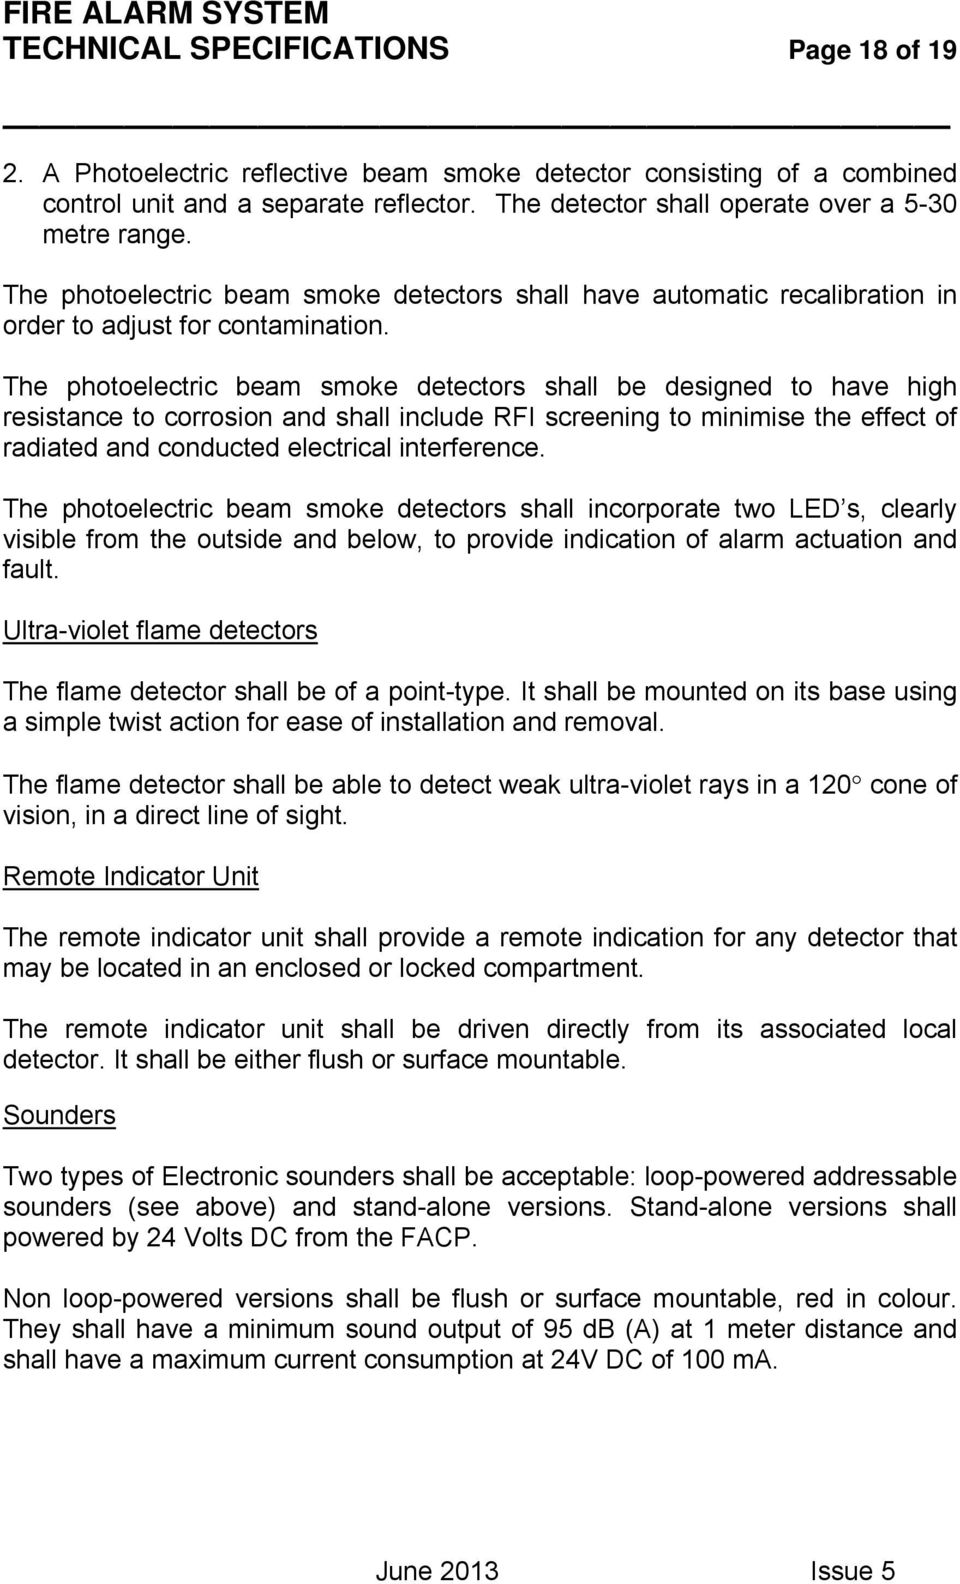 Fire Alarm System Technical Specifications Page 1 Of 19 Pdf Flame Detector Photocell Wiring Diagram The Photoelectric Beam Smoke Detectors Shall Be Designed To Have High Resistance Corrosion And